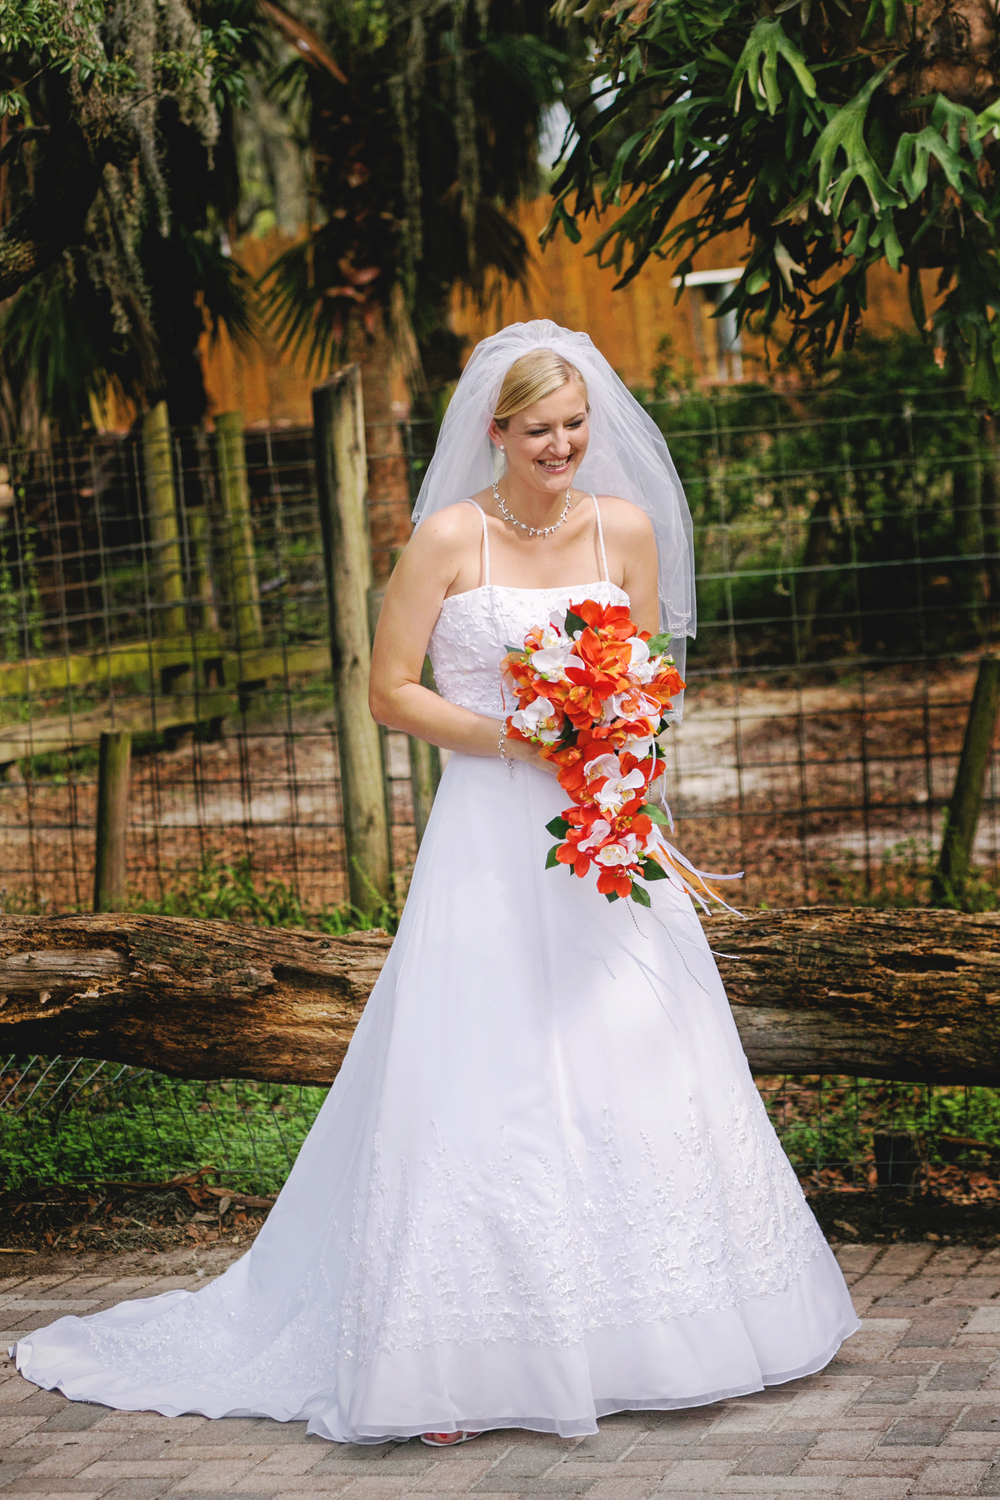 Tampa Lowry Zoo Wedding Photographer-68.jpg